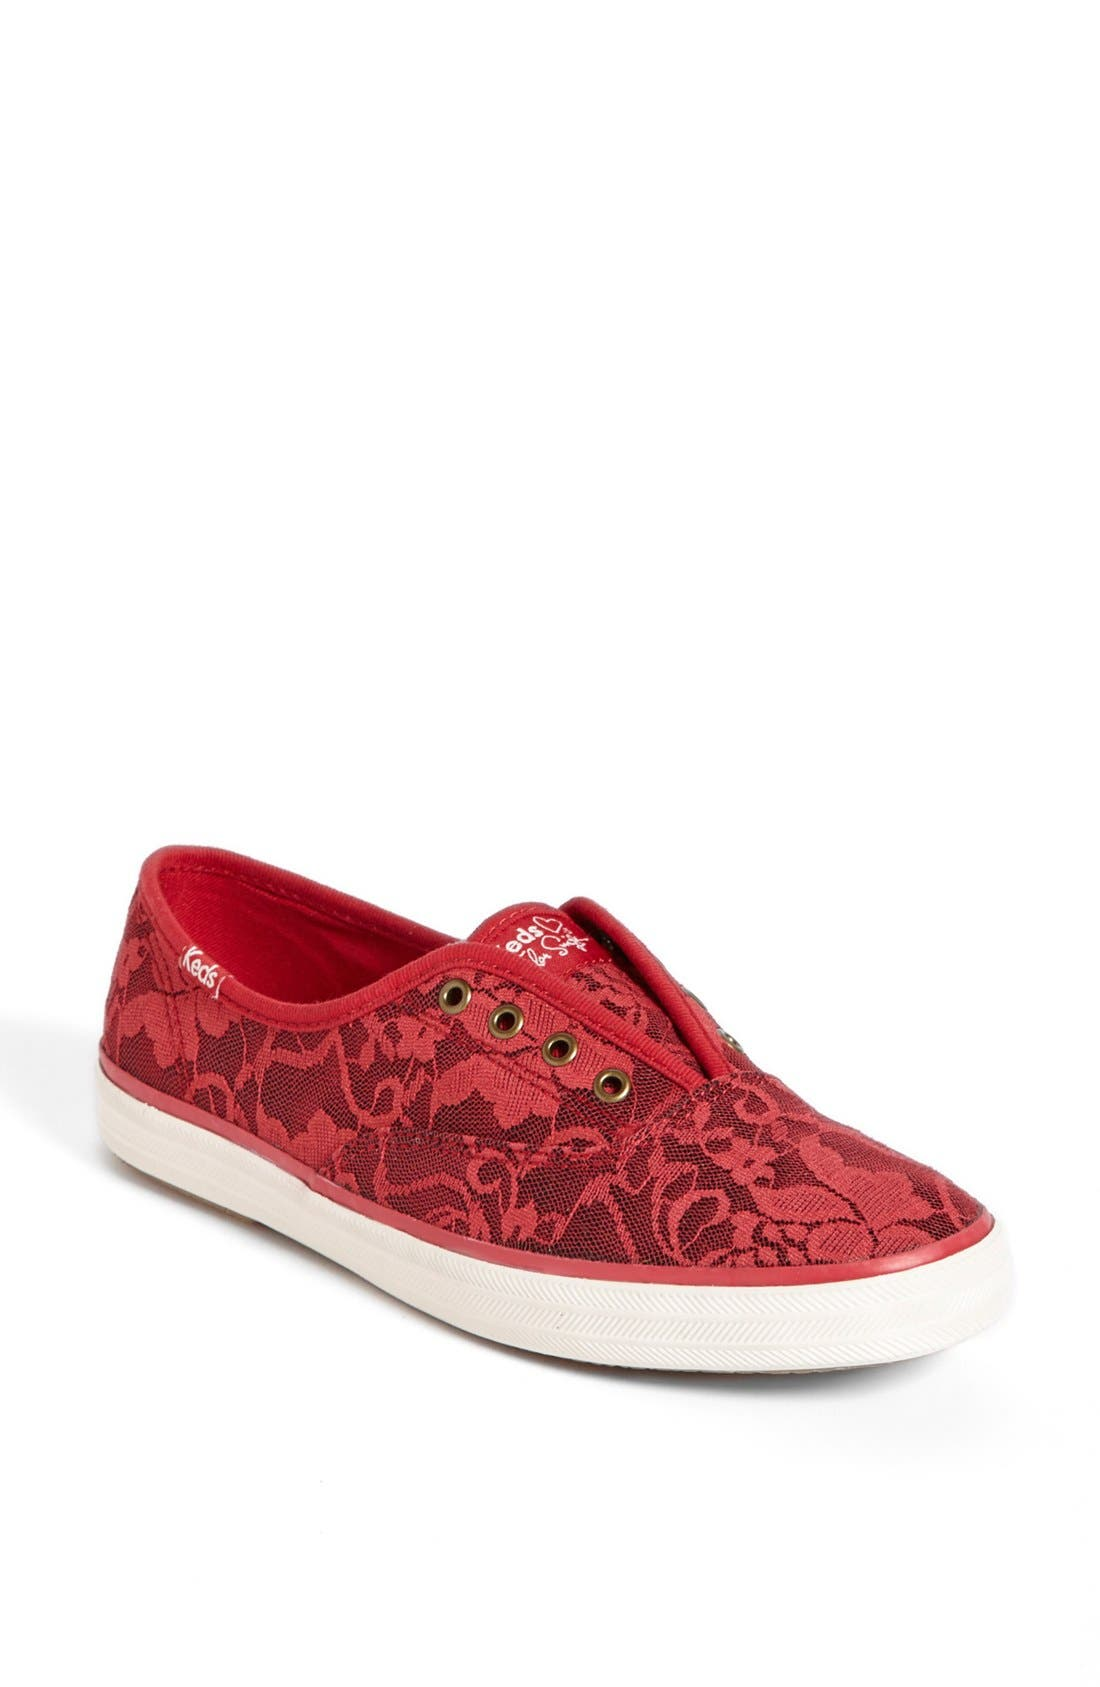 Alternate Image 1 Selected - Keds® Taylor Swift Champion Sneaker